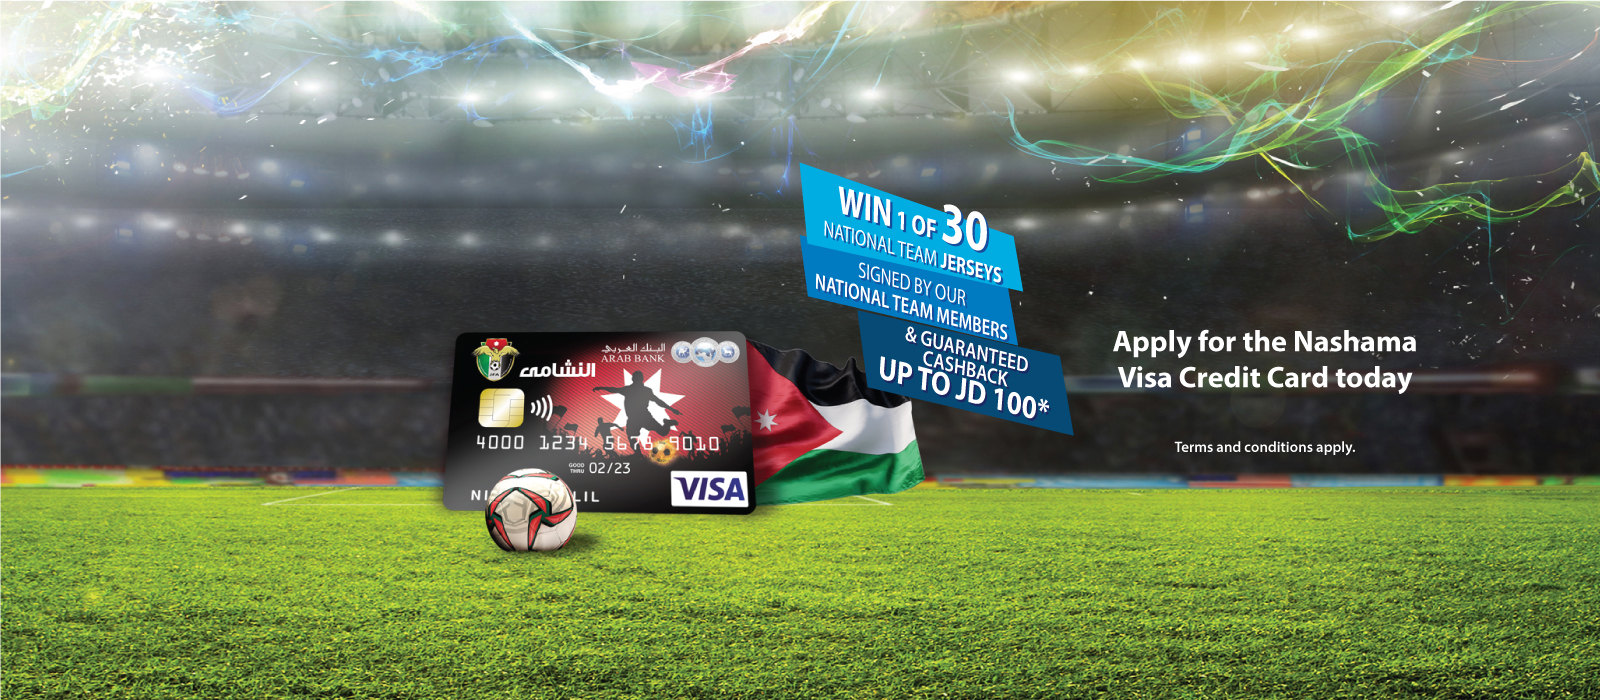 Nshama Visa Credit Card main banner